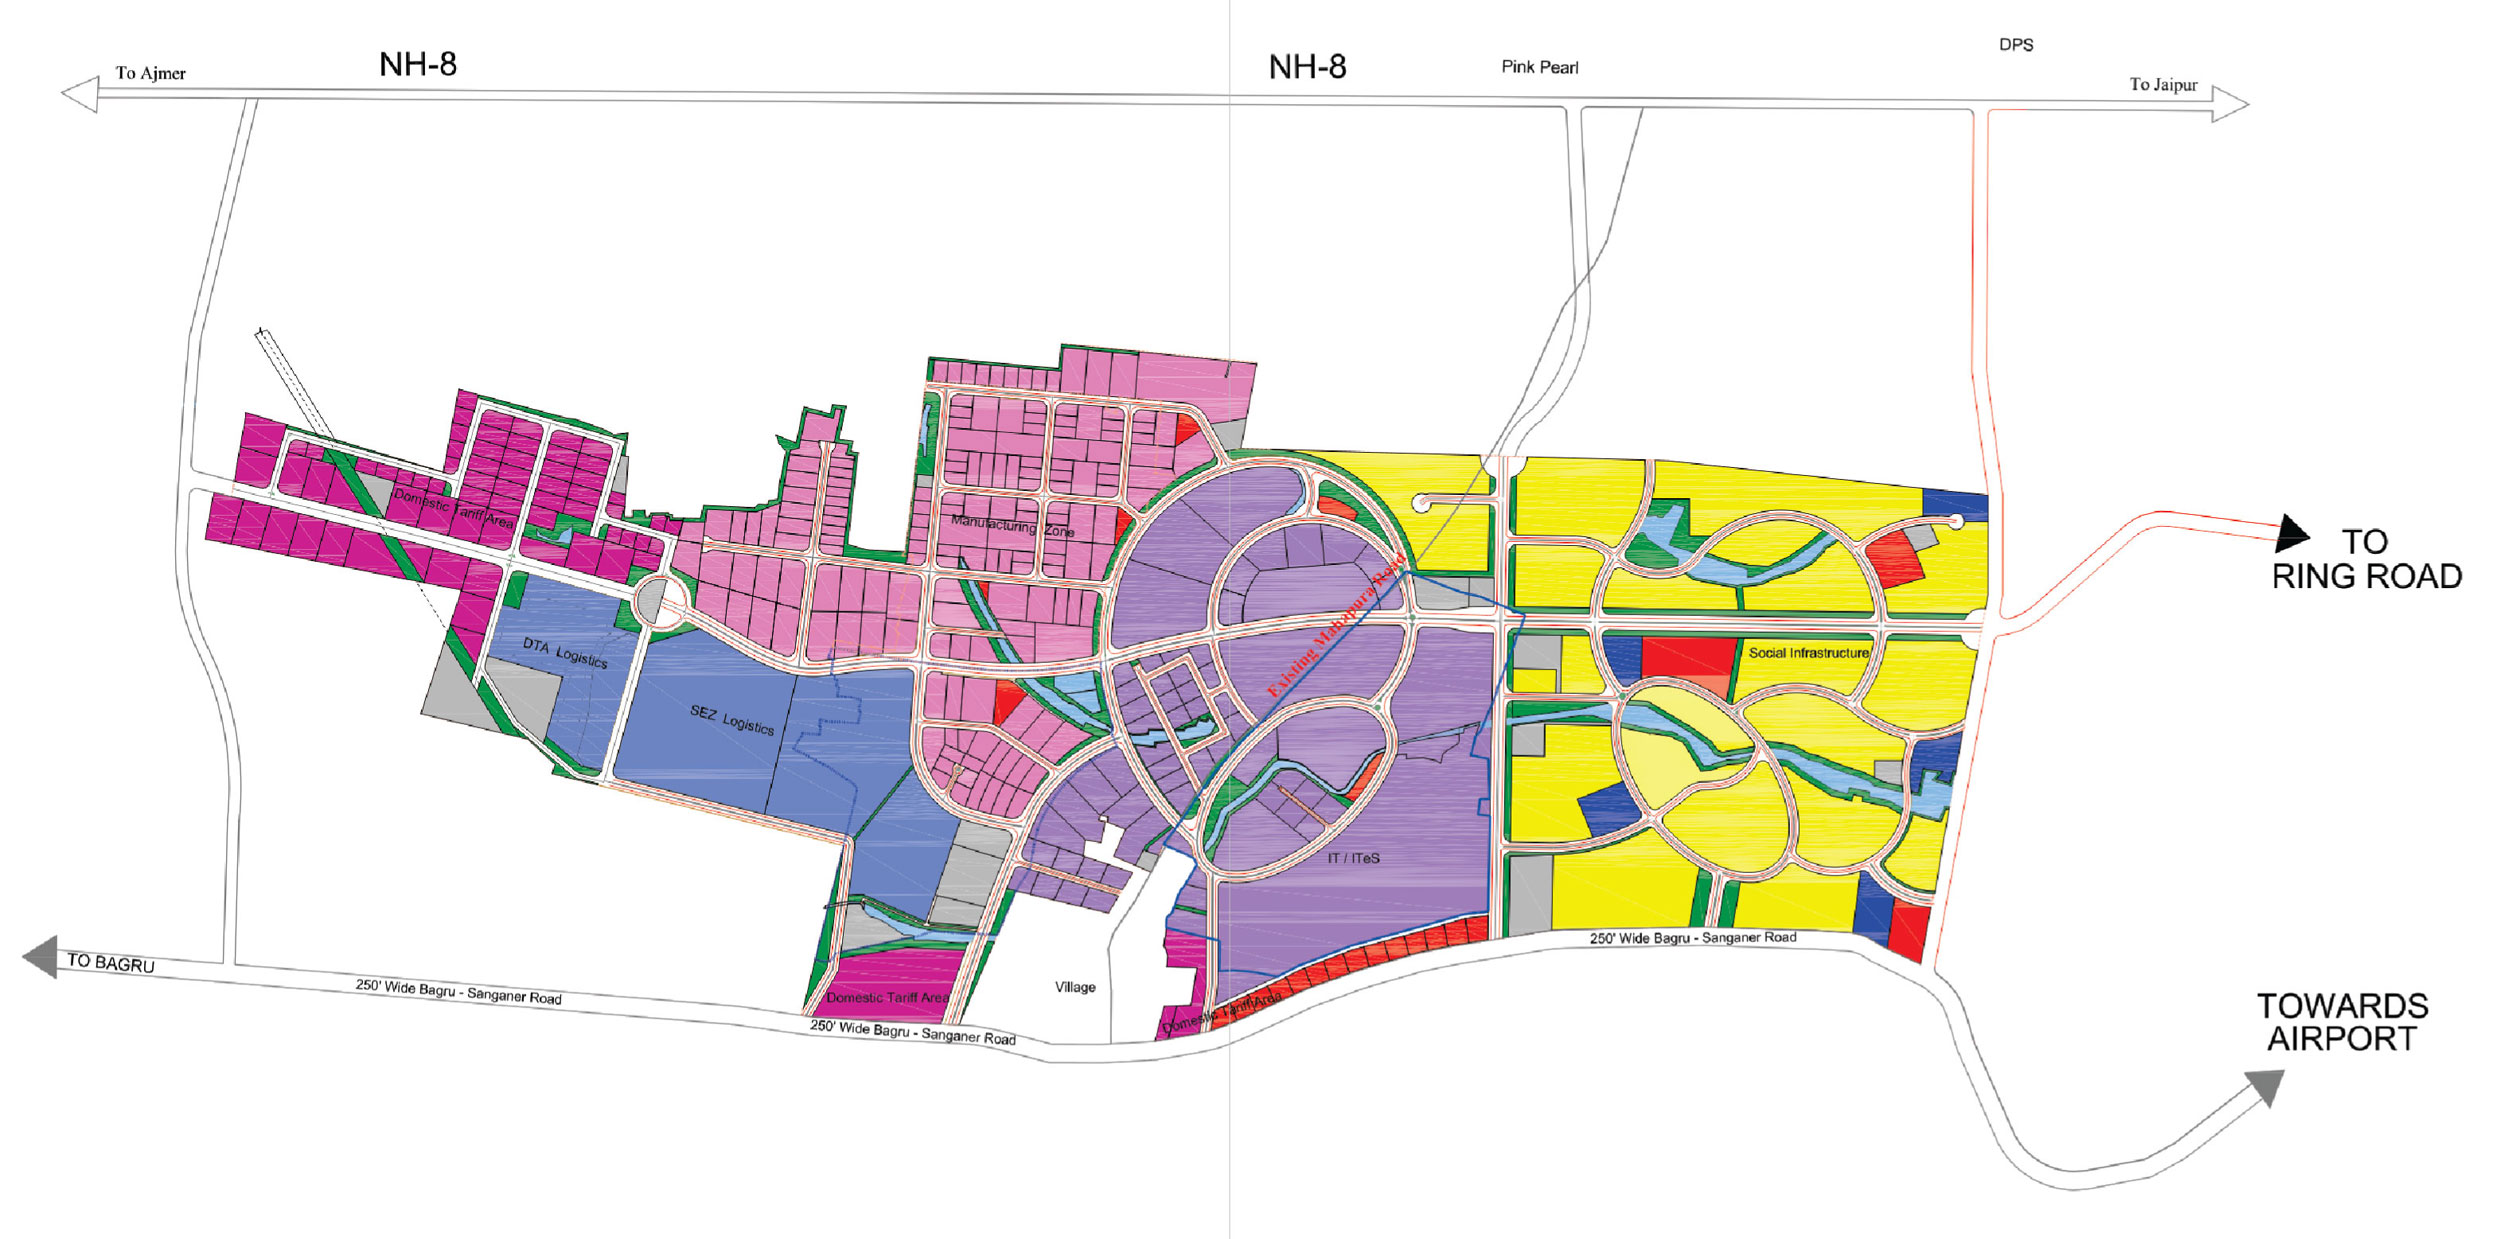 Mahindra world city integrated business cities special economic zone master plan gumiabroncs Gallery